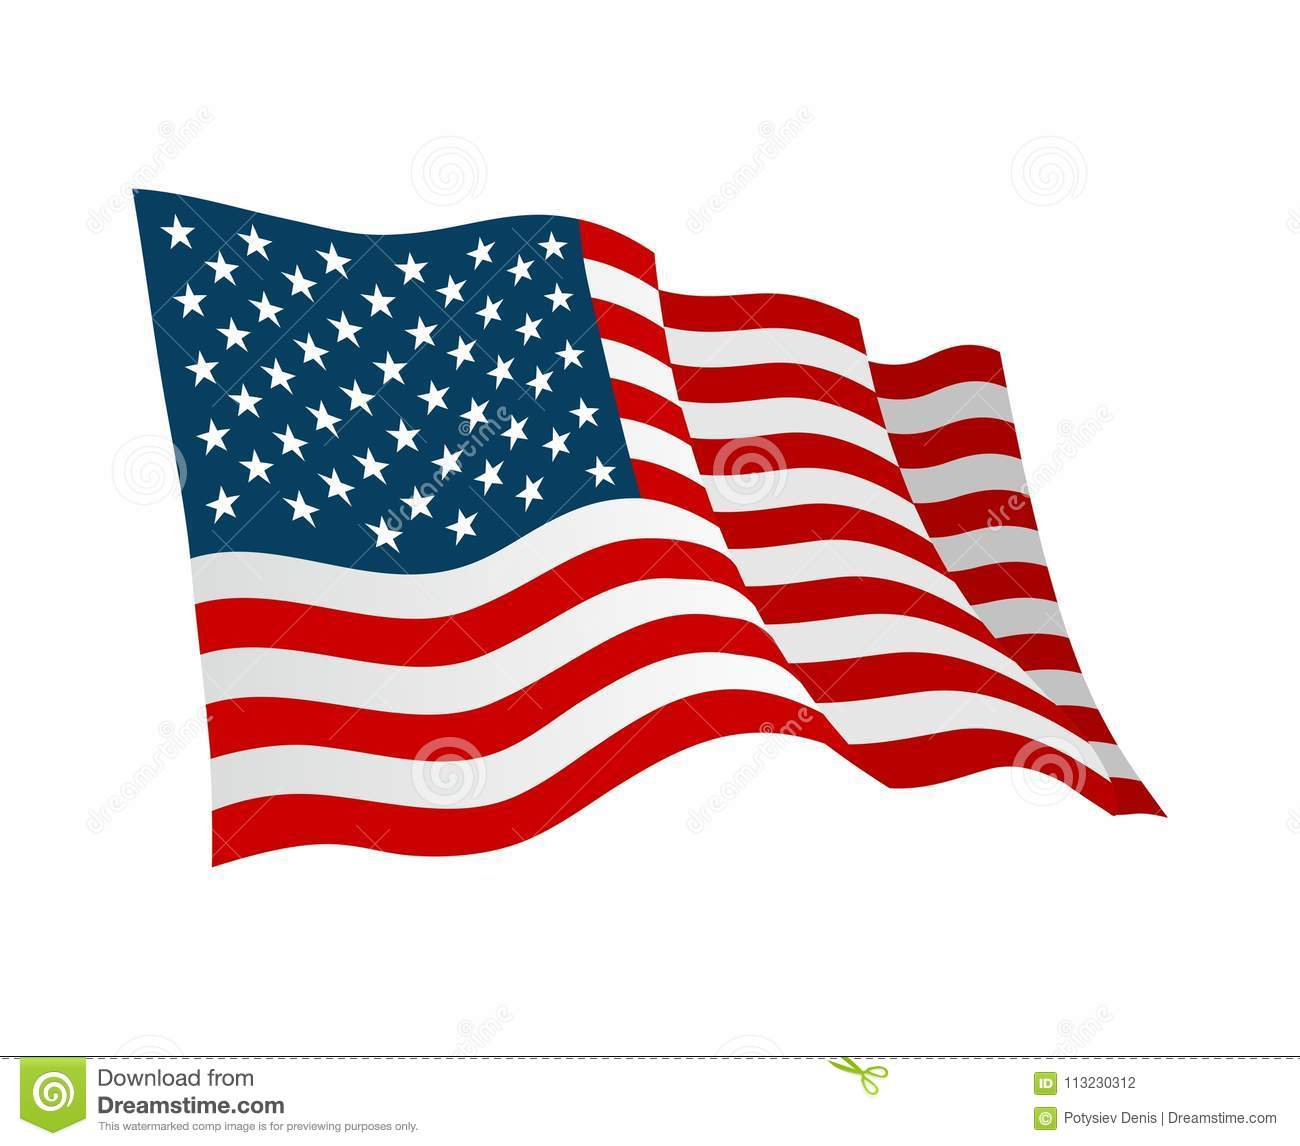 American flag. Vector flat color illustration isolated on white